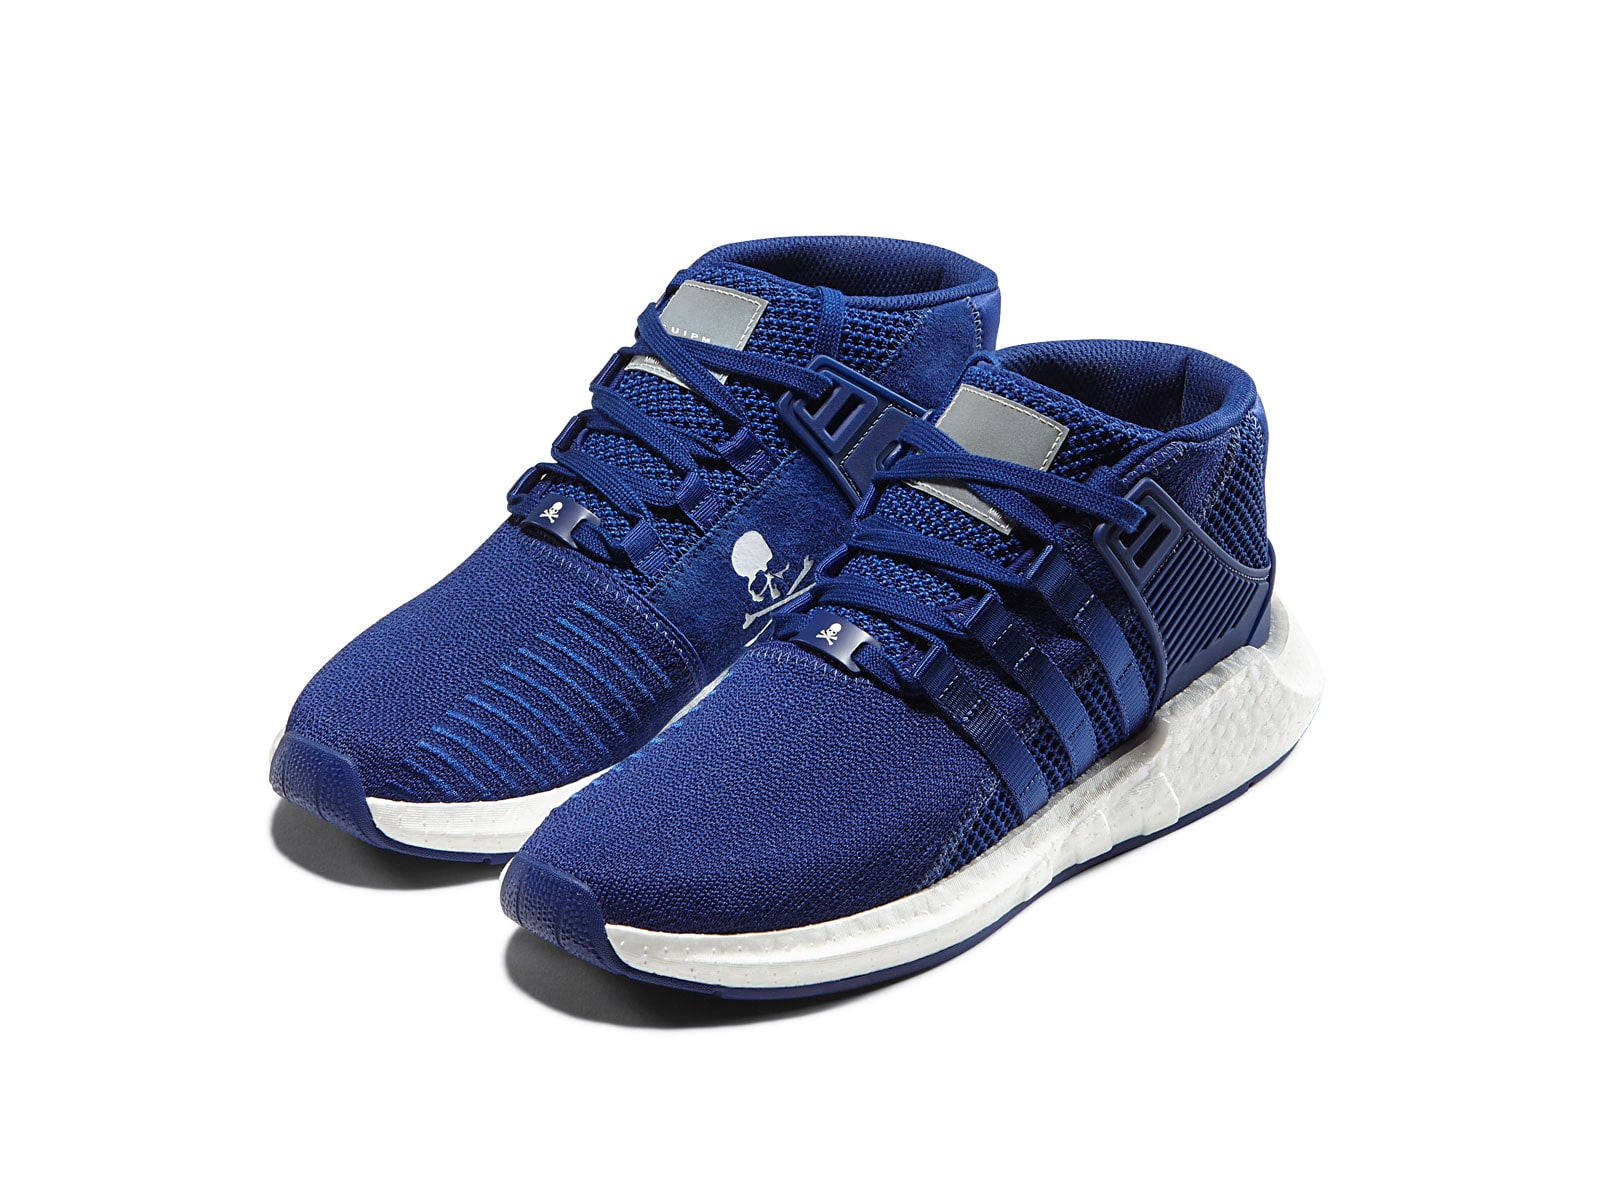 classic fit f9635 3a5b4 MASTERMIND WORLD X ADIDAS EQT SUPPORT 93/17 - MYSTERYINK/WHITE